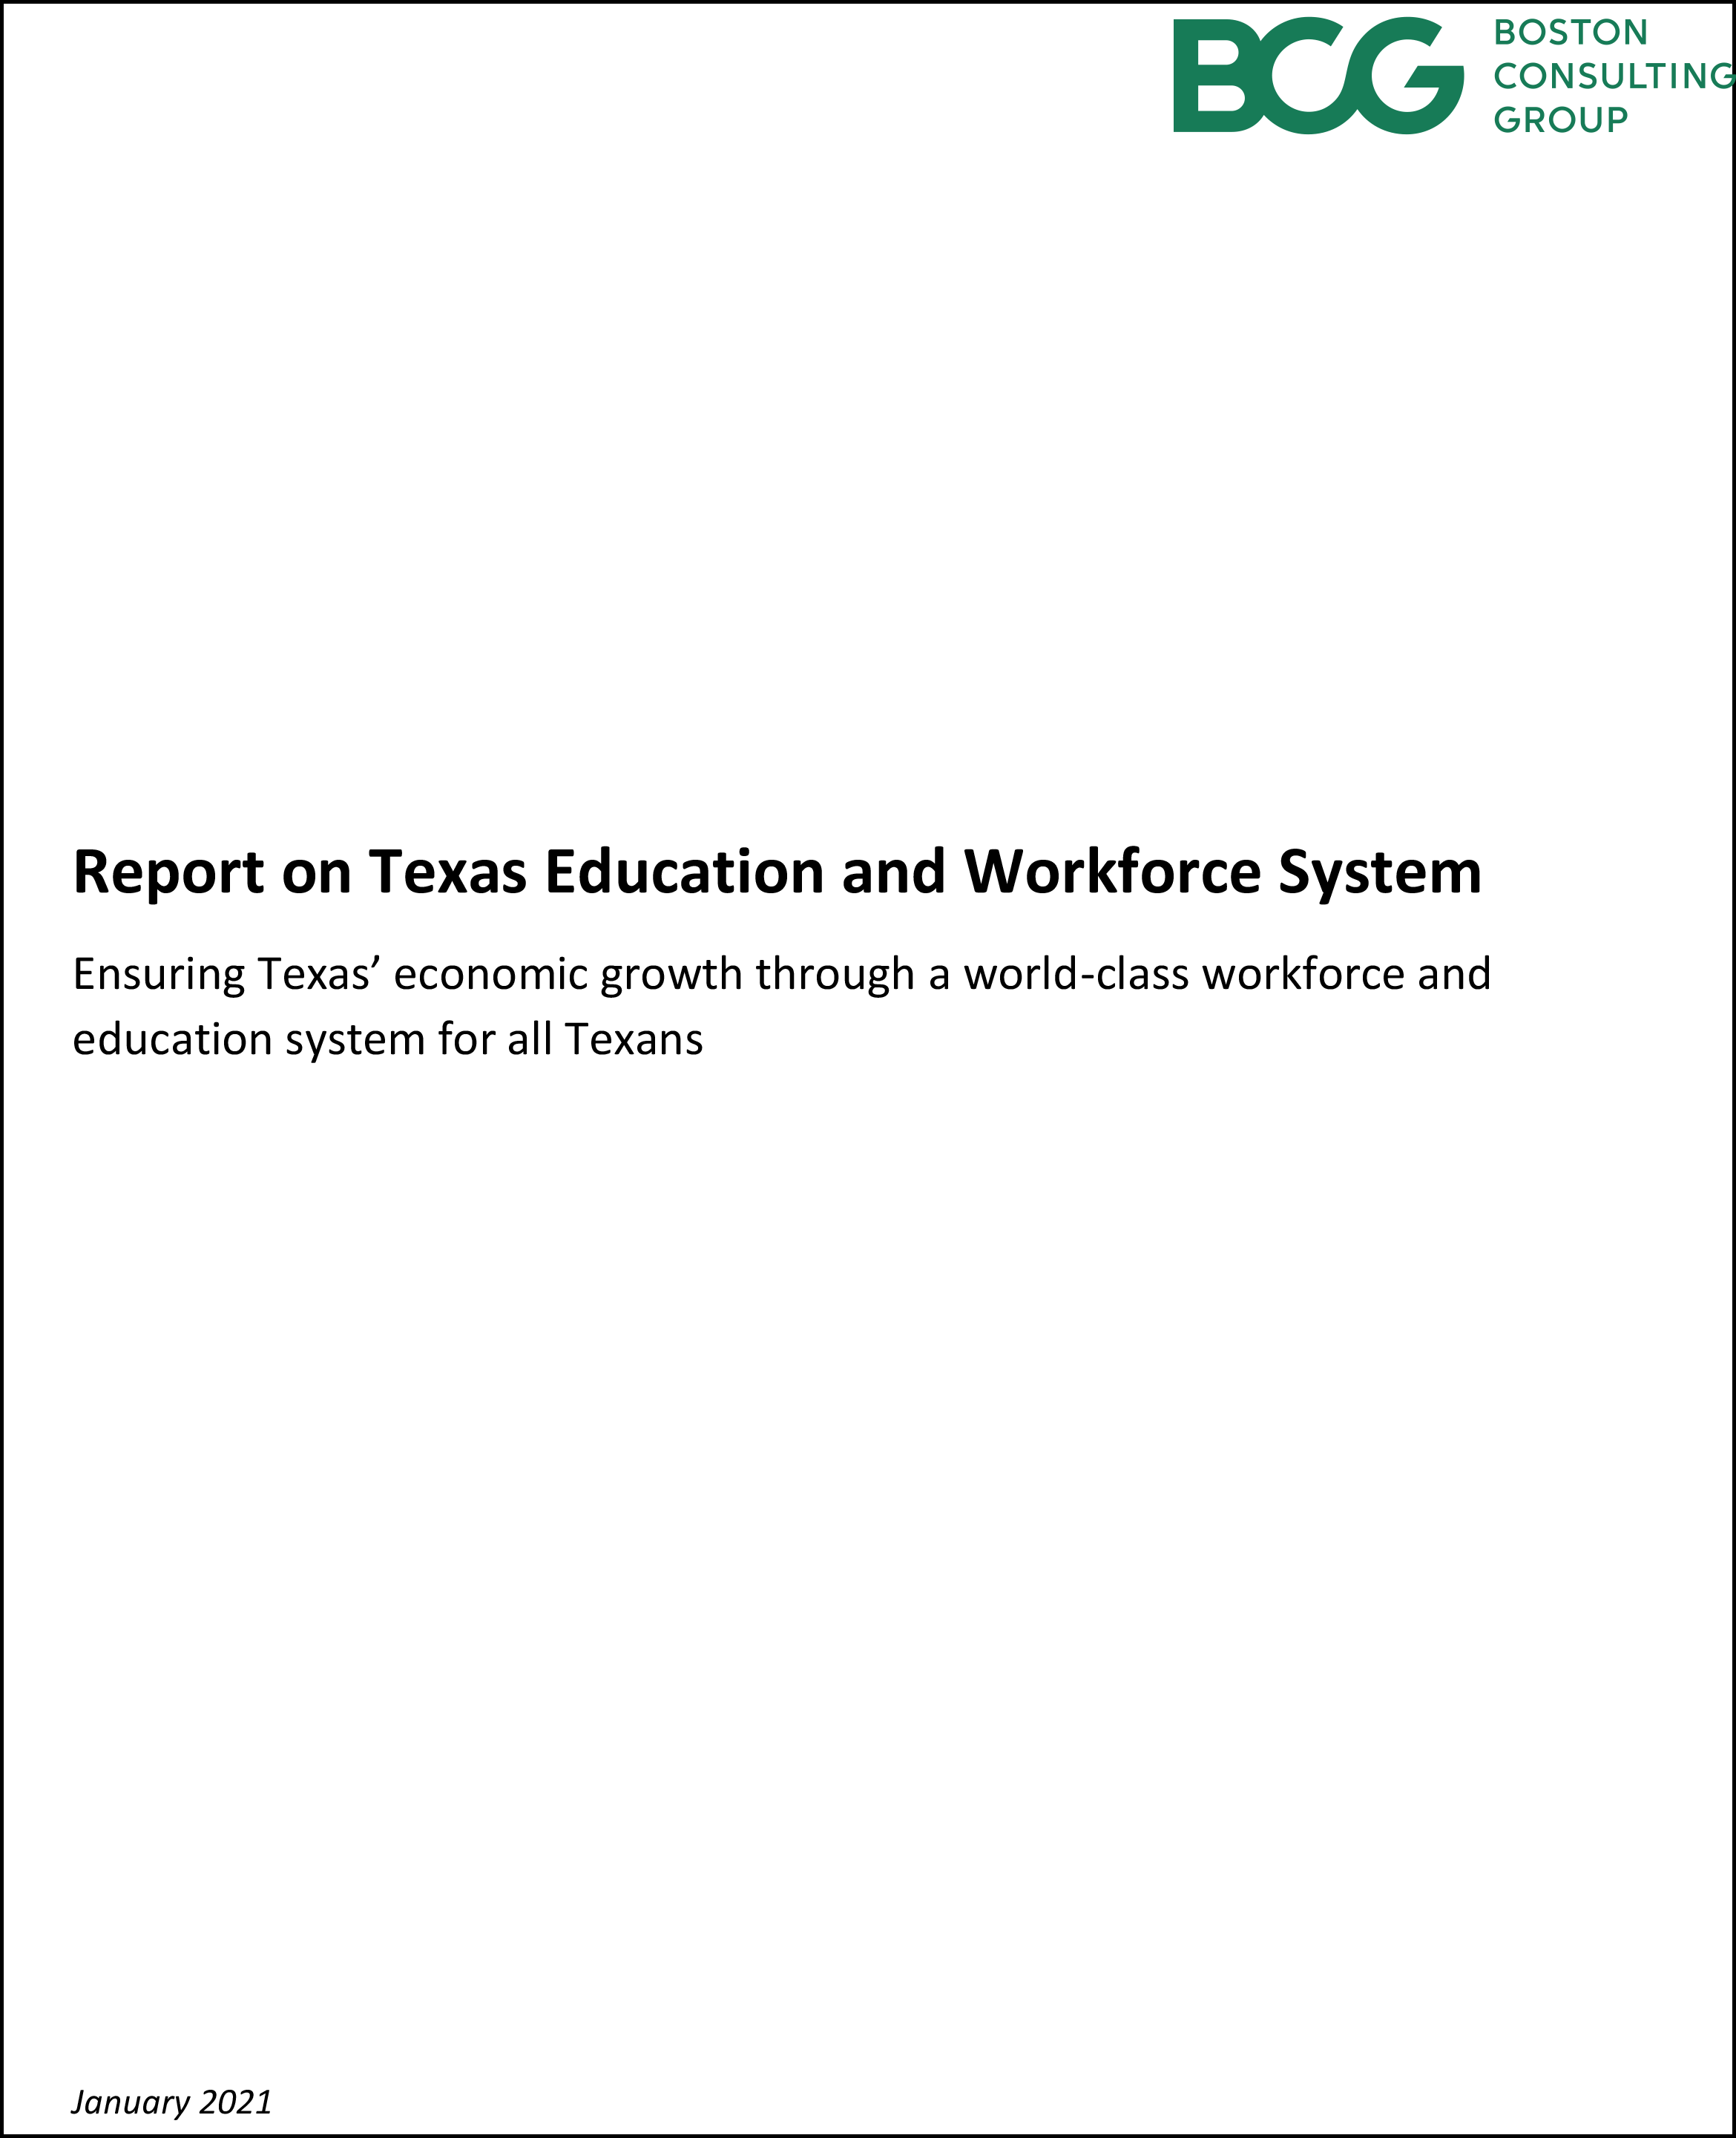 BCG Report on Texas Education and Workforce System